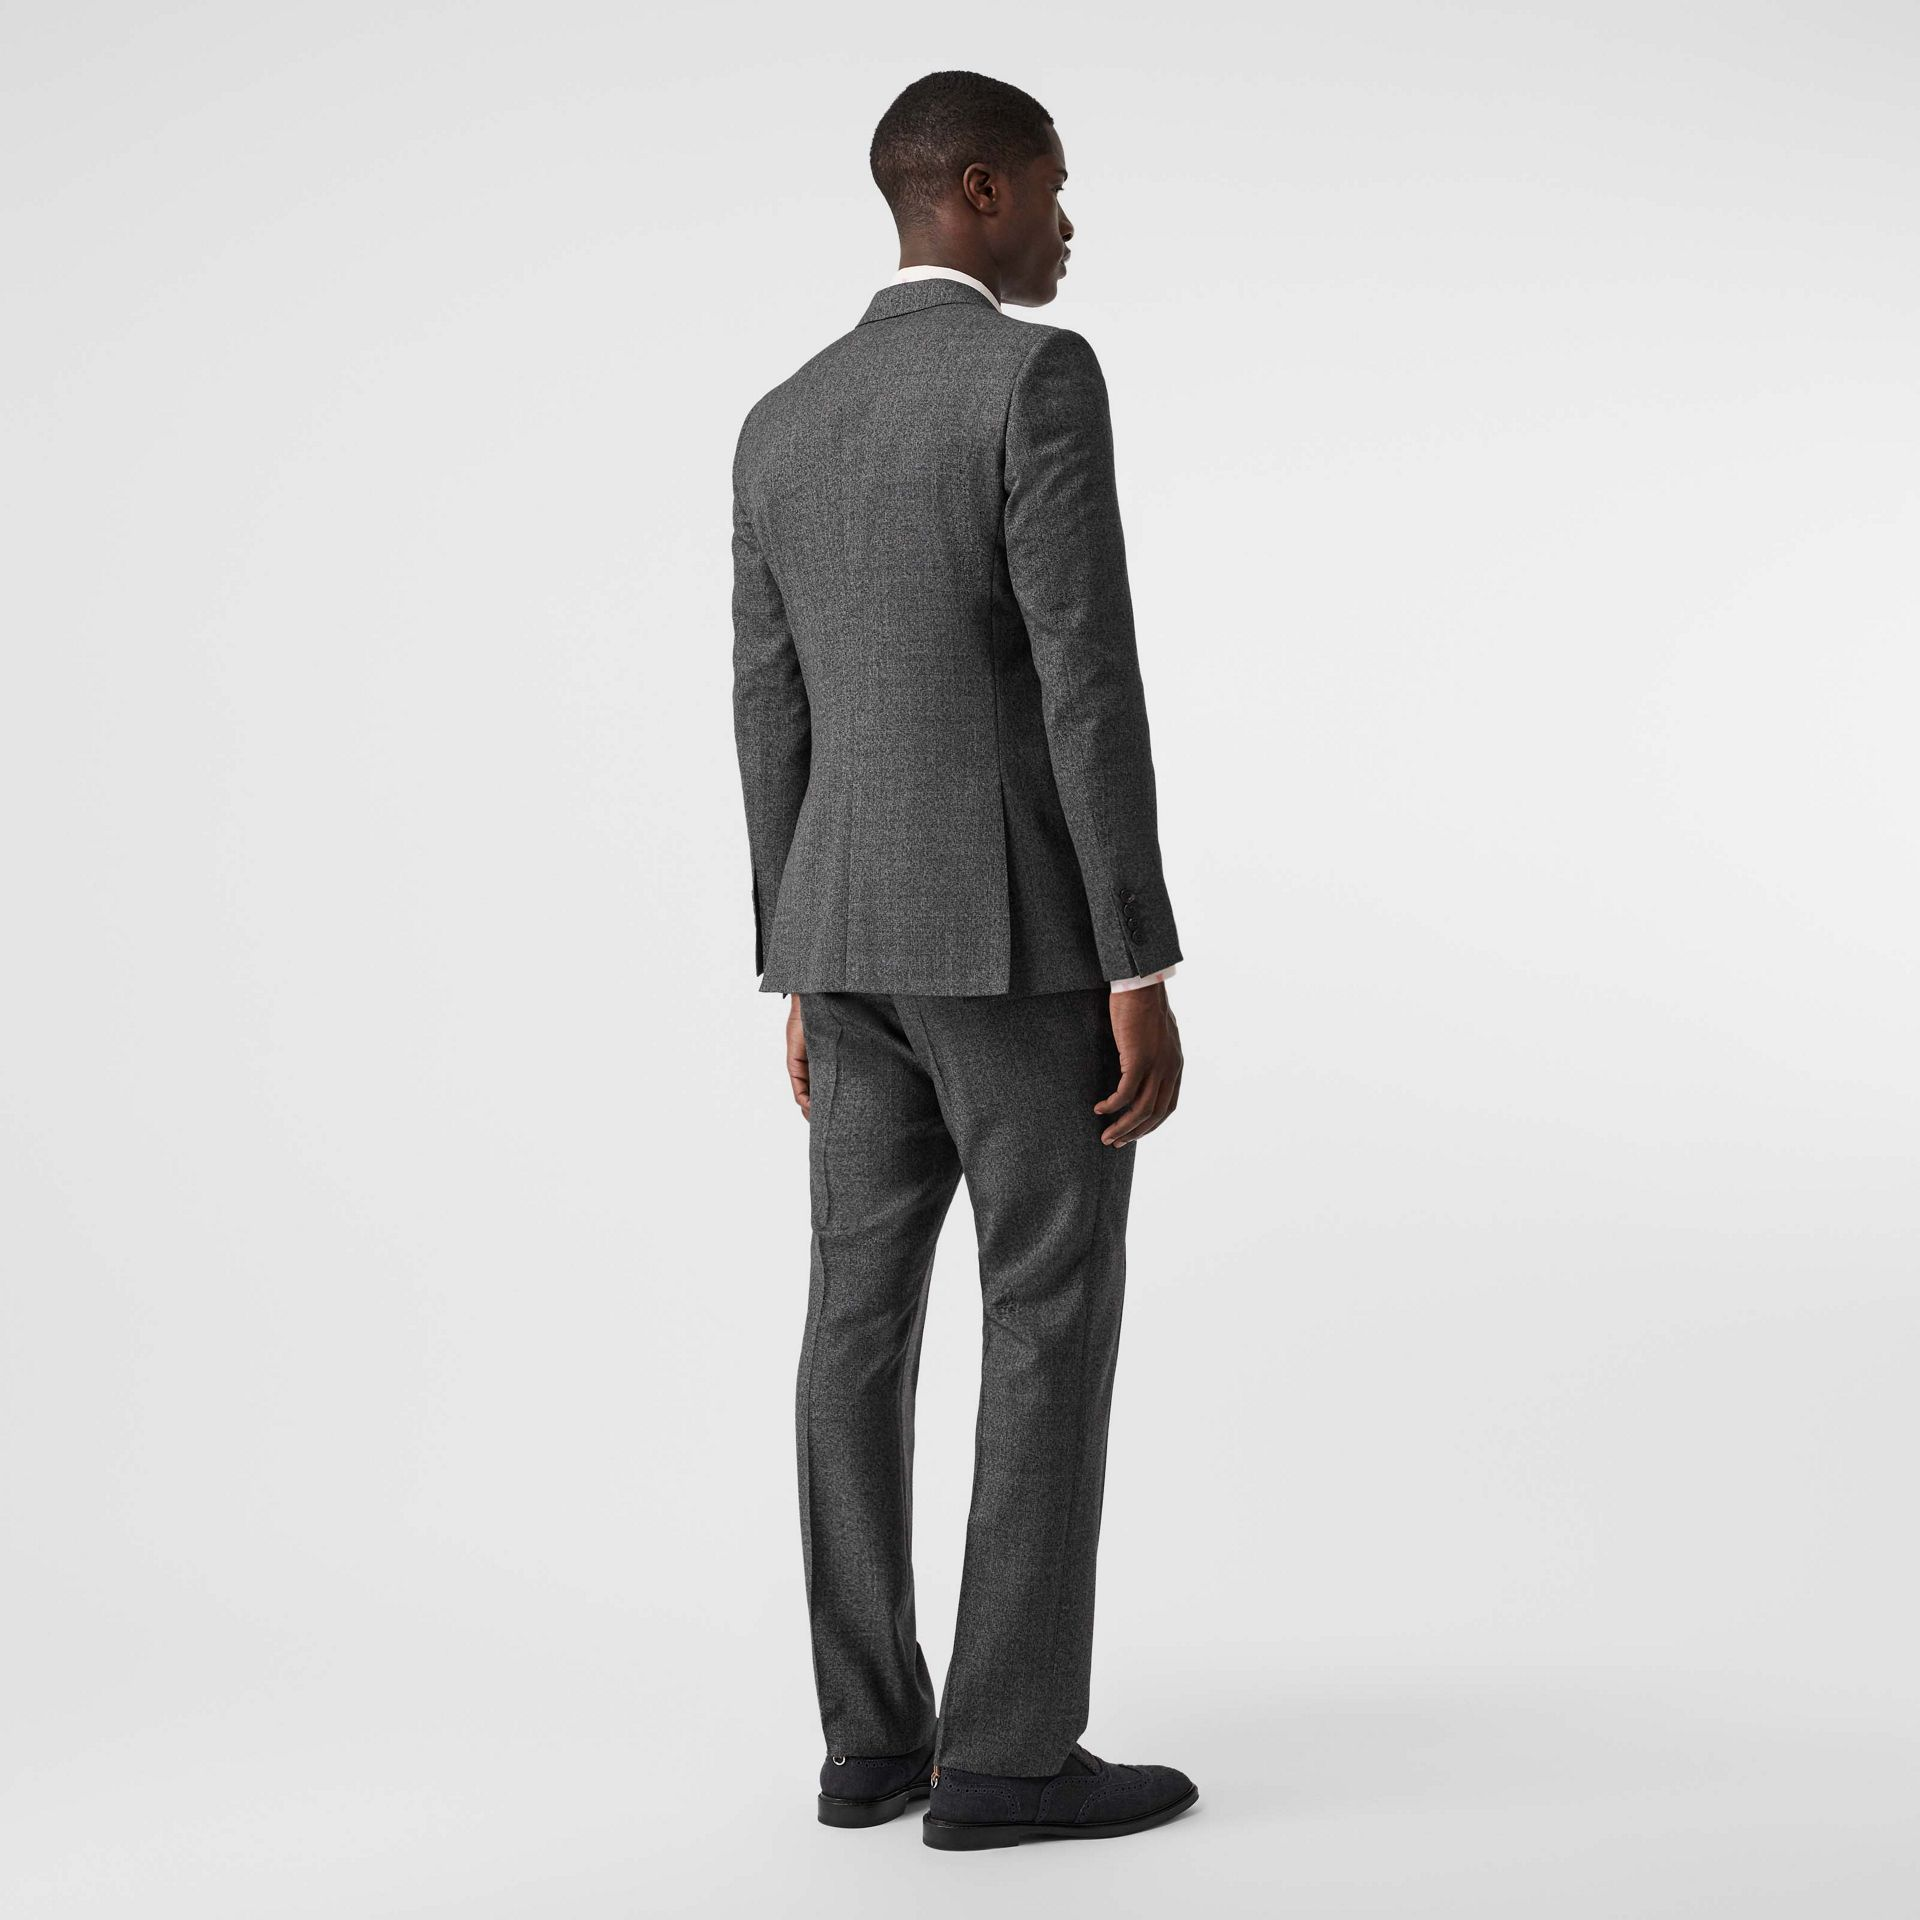 English Fit Sharkskin Wool Suit in Black Melange - Men | Burberry Hong Kong S.A.R - gallery image 2